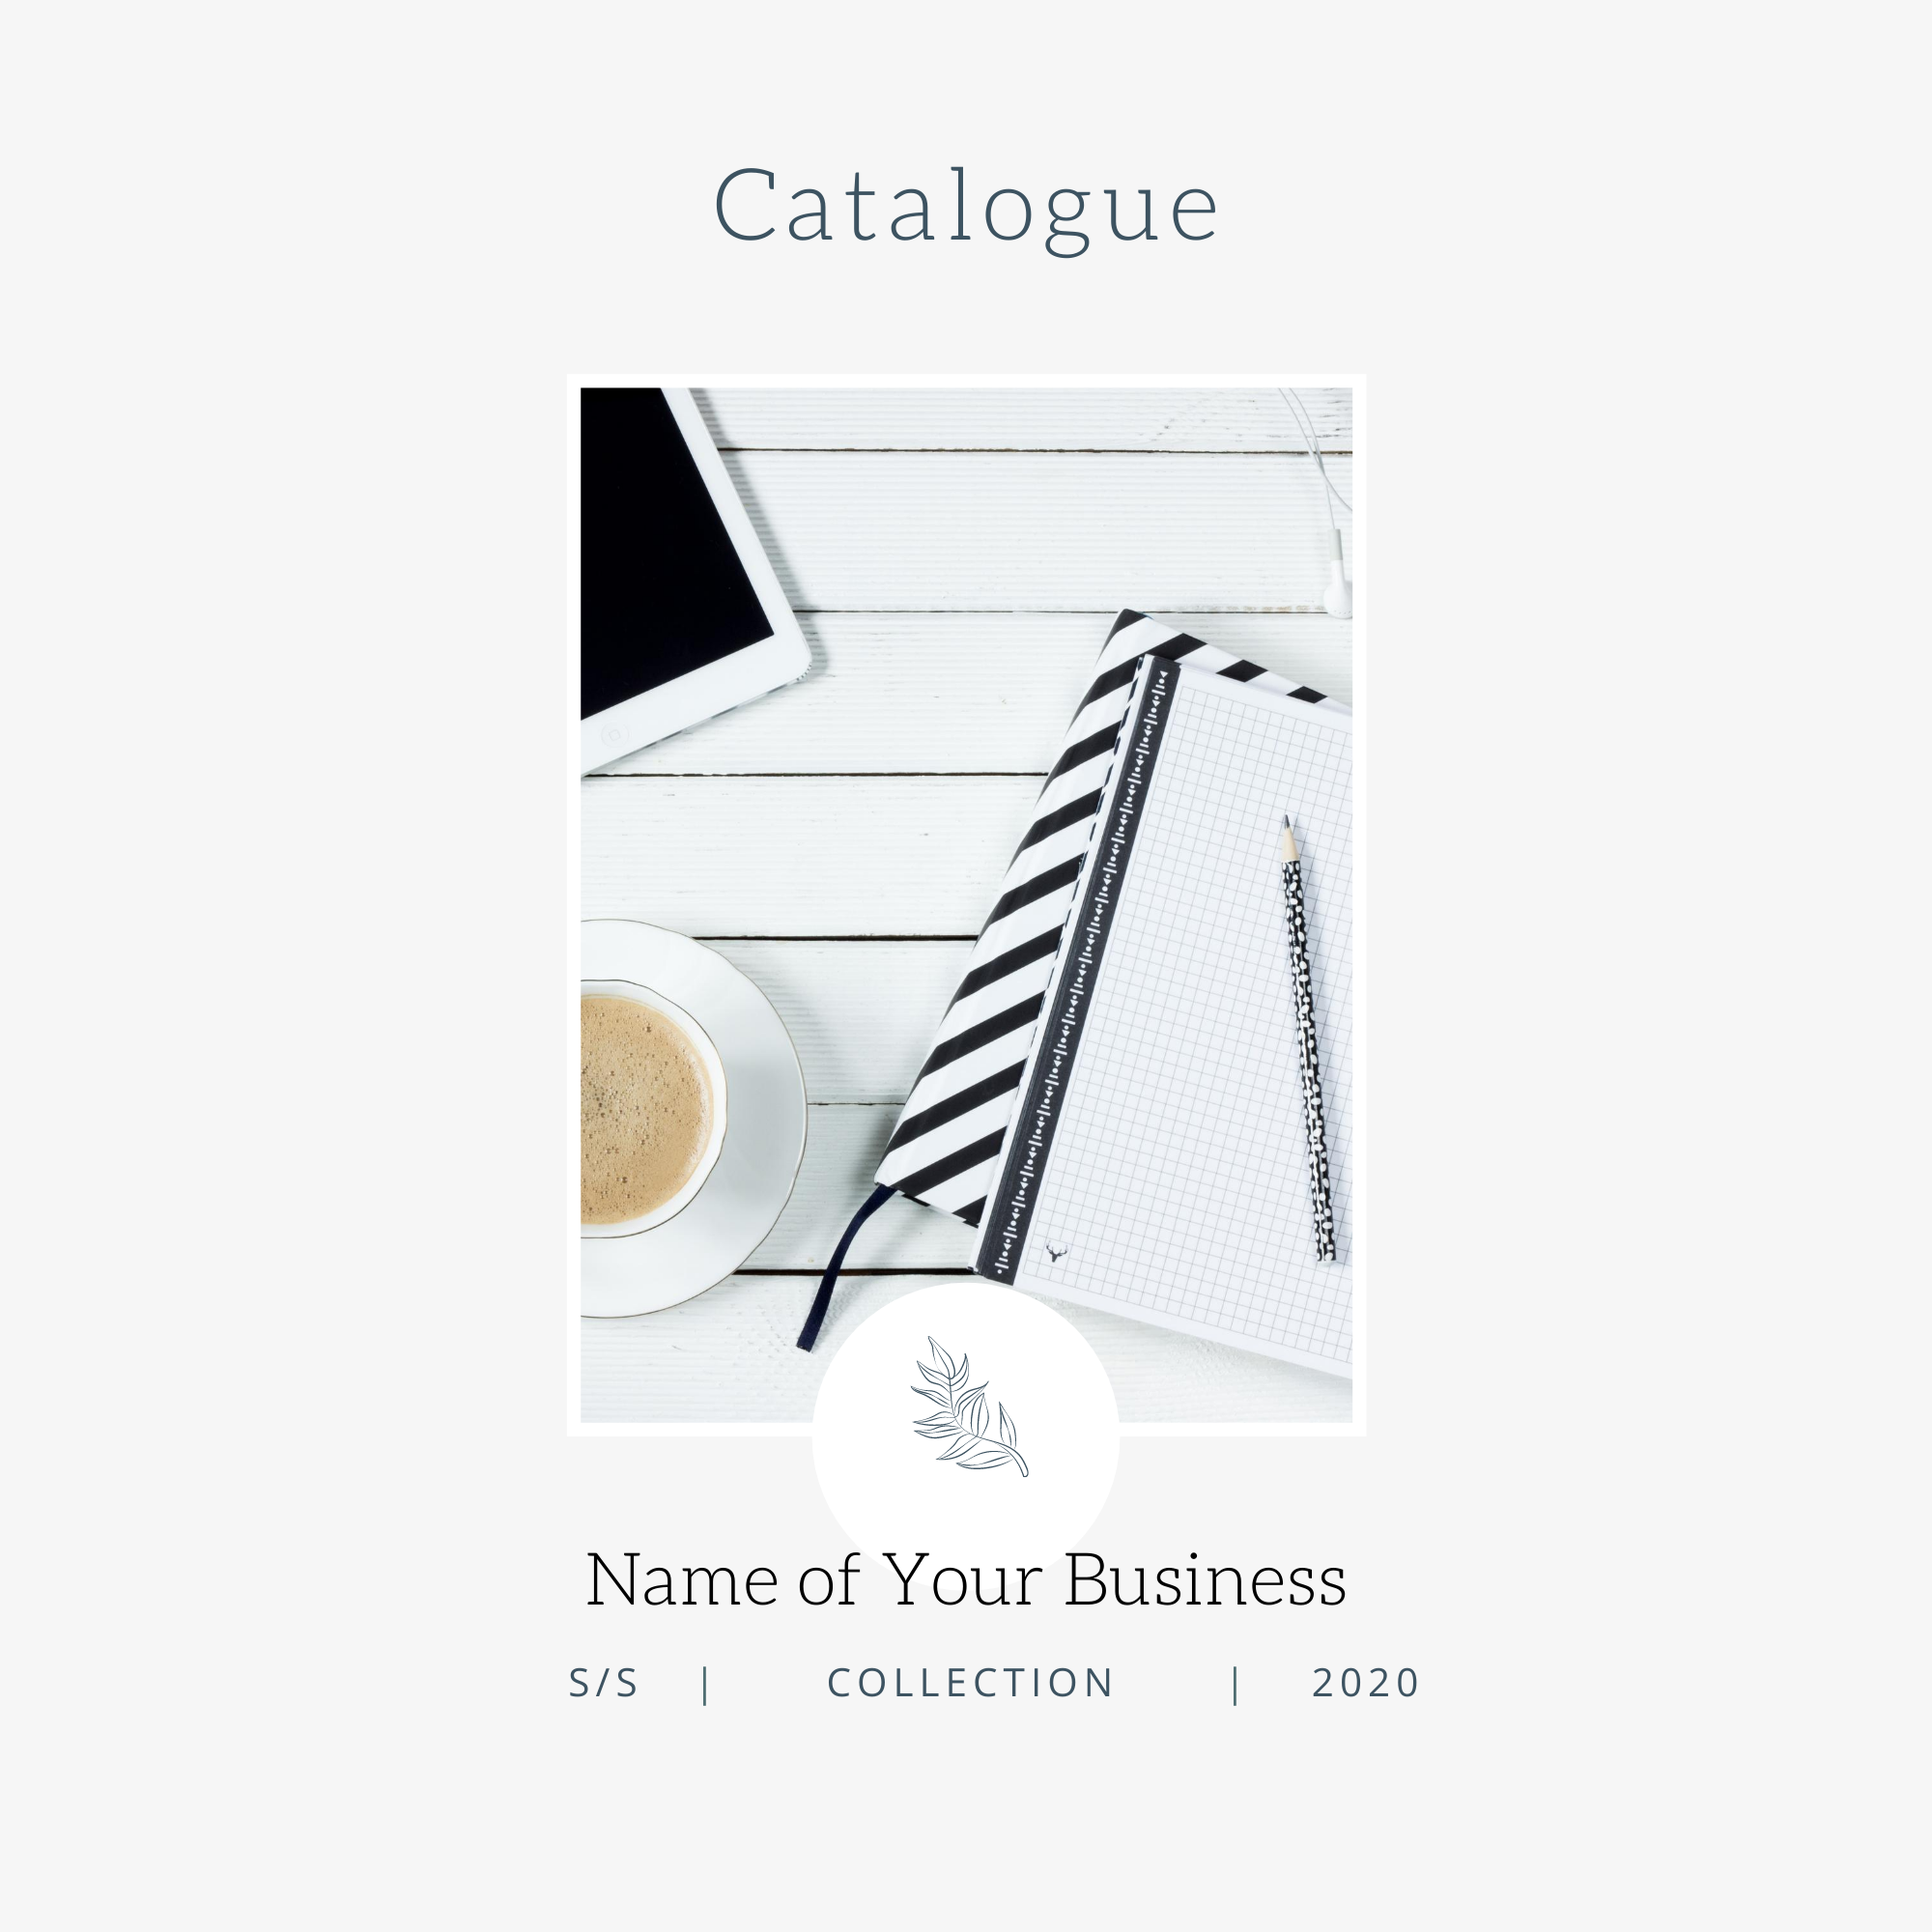 Catalogue or Look Book - Modern Minimalist